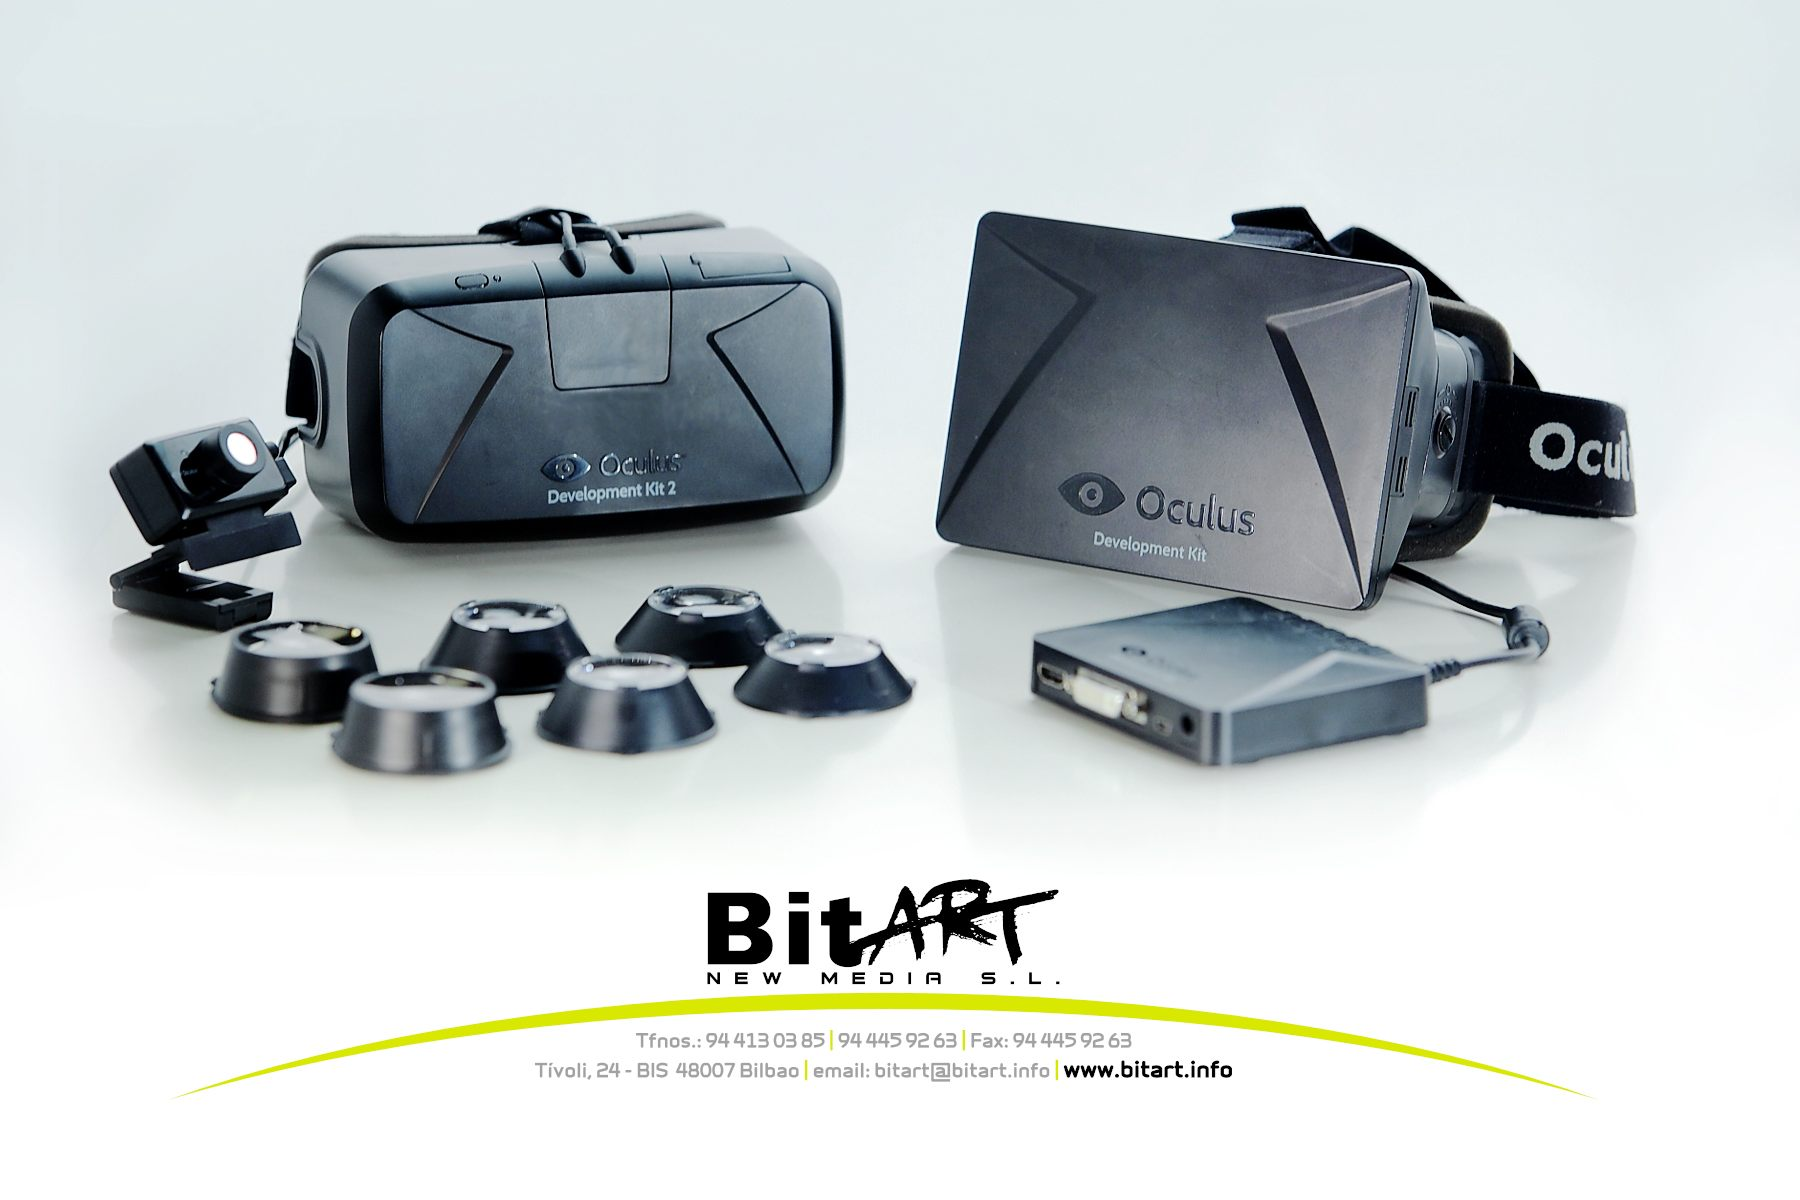 OCULUS BITART NEW MEDIA